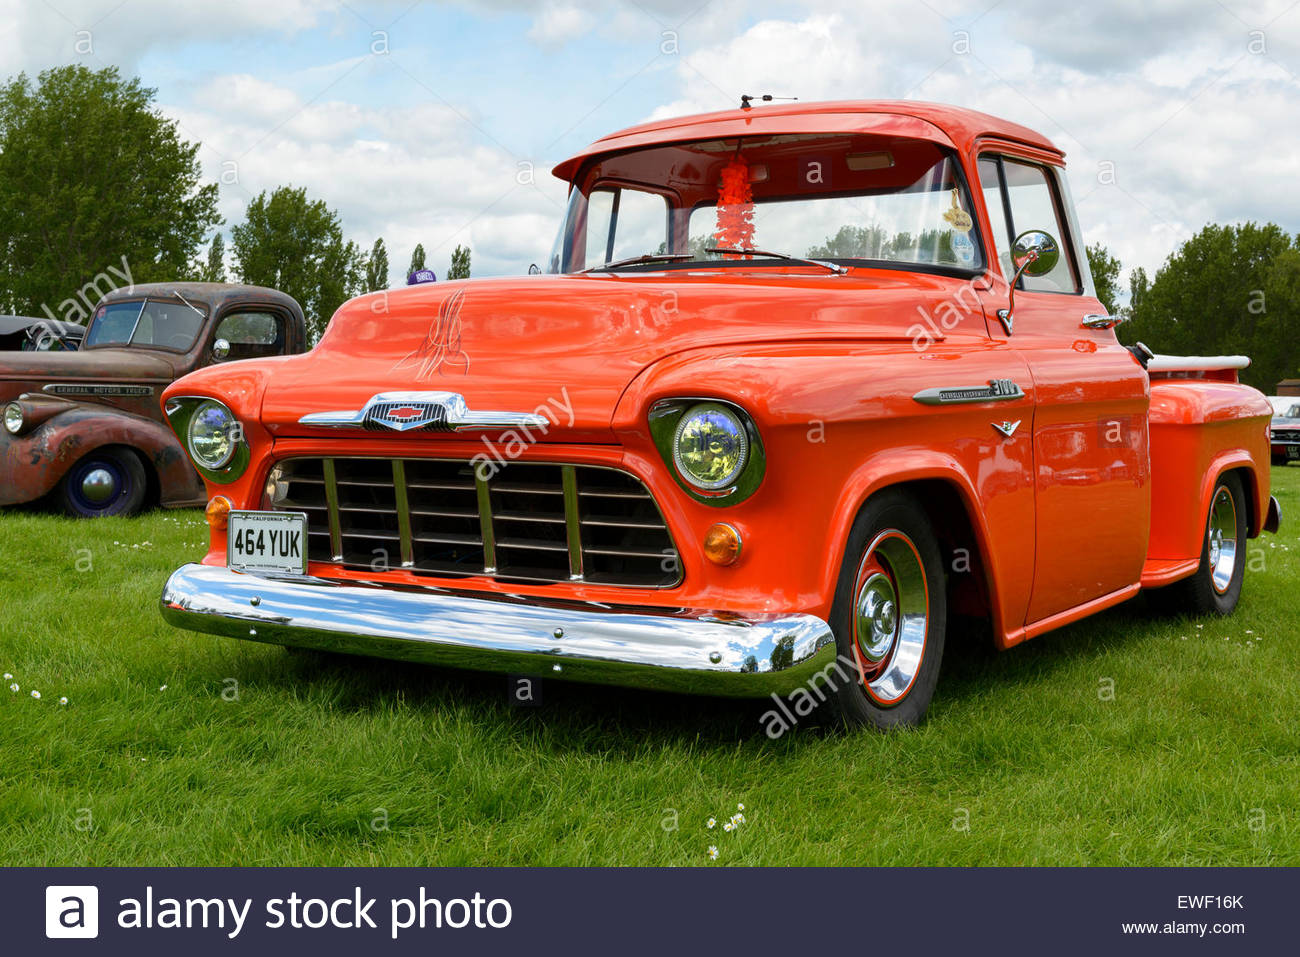 chevy pickup truck amerikanische auto show abrechnung northampton england uk stockfoto. Black Bedroom Furniture Sets. Home Design Ideas